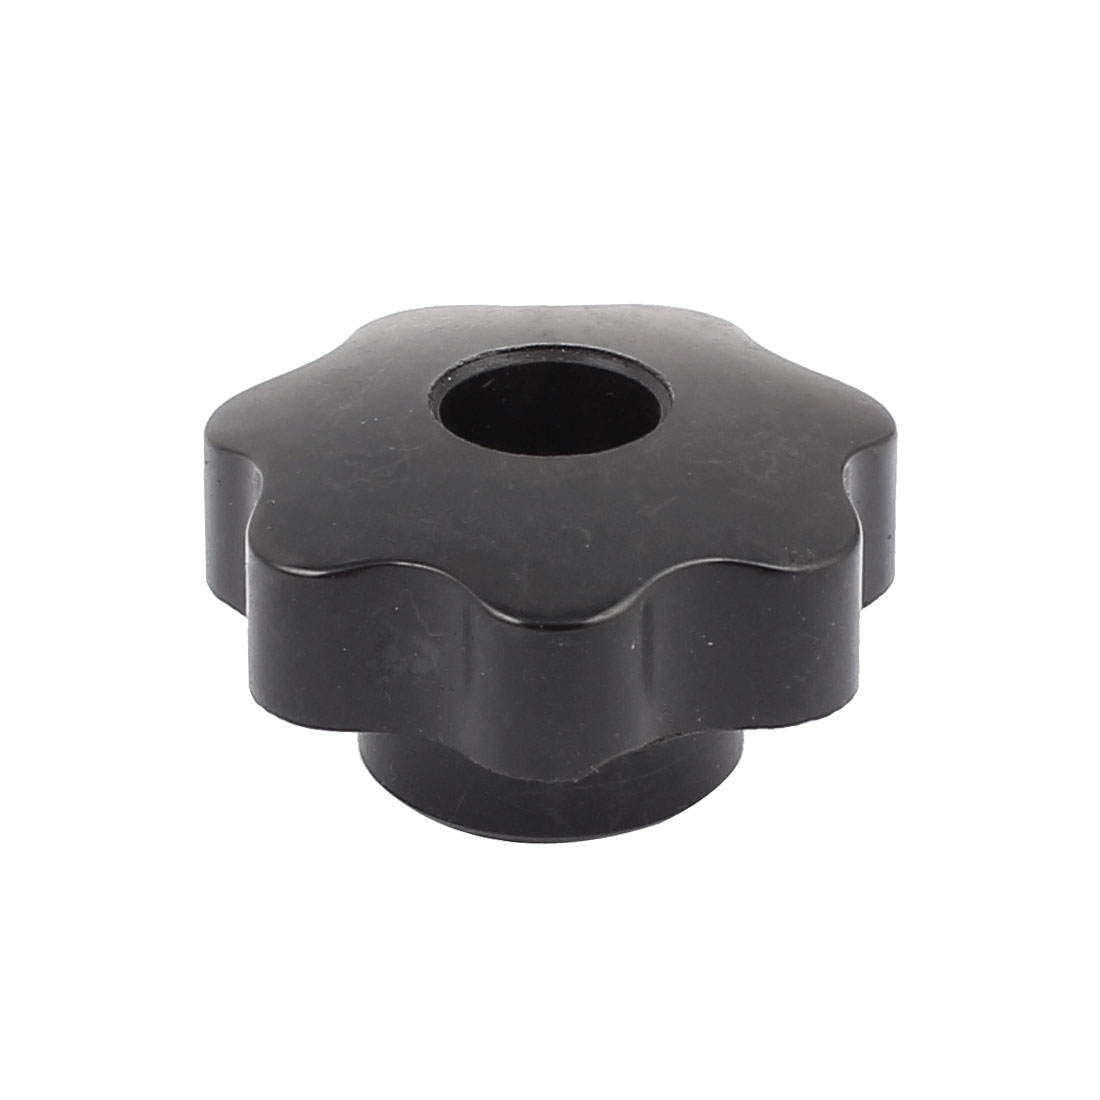 M8 Female Thread Grip Replacement Head Clamping Nuts Star Knob